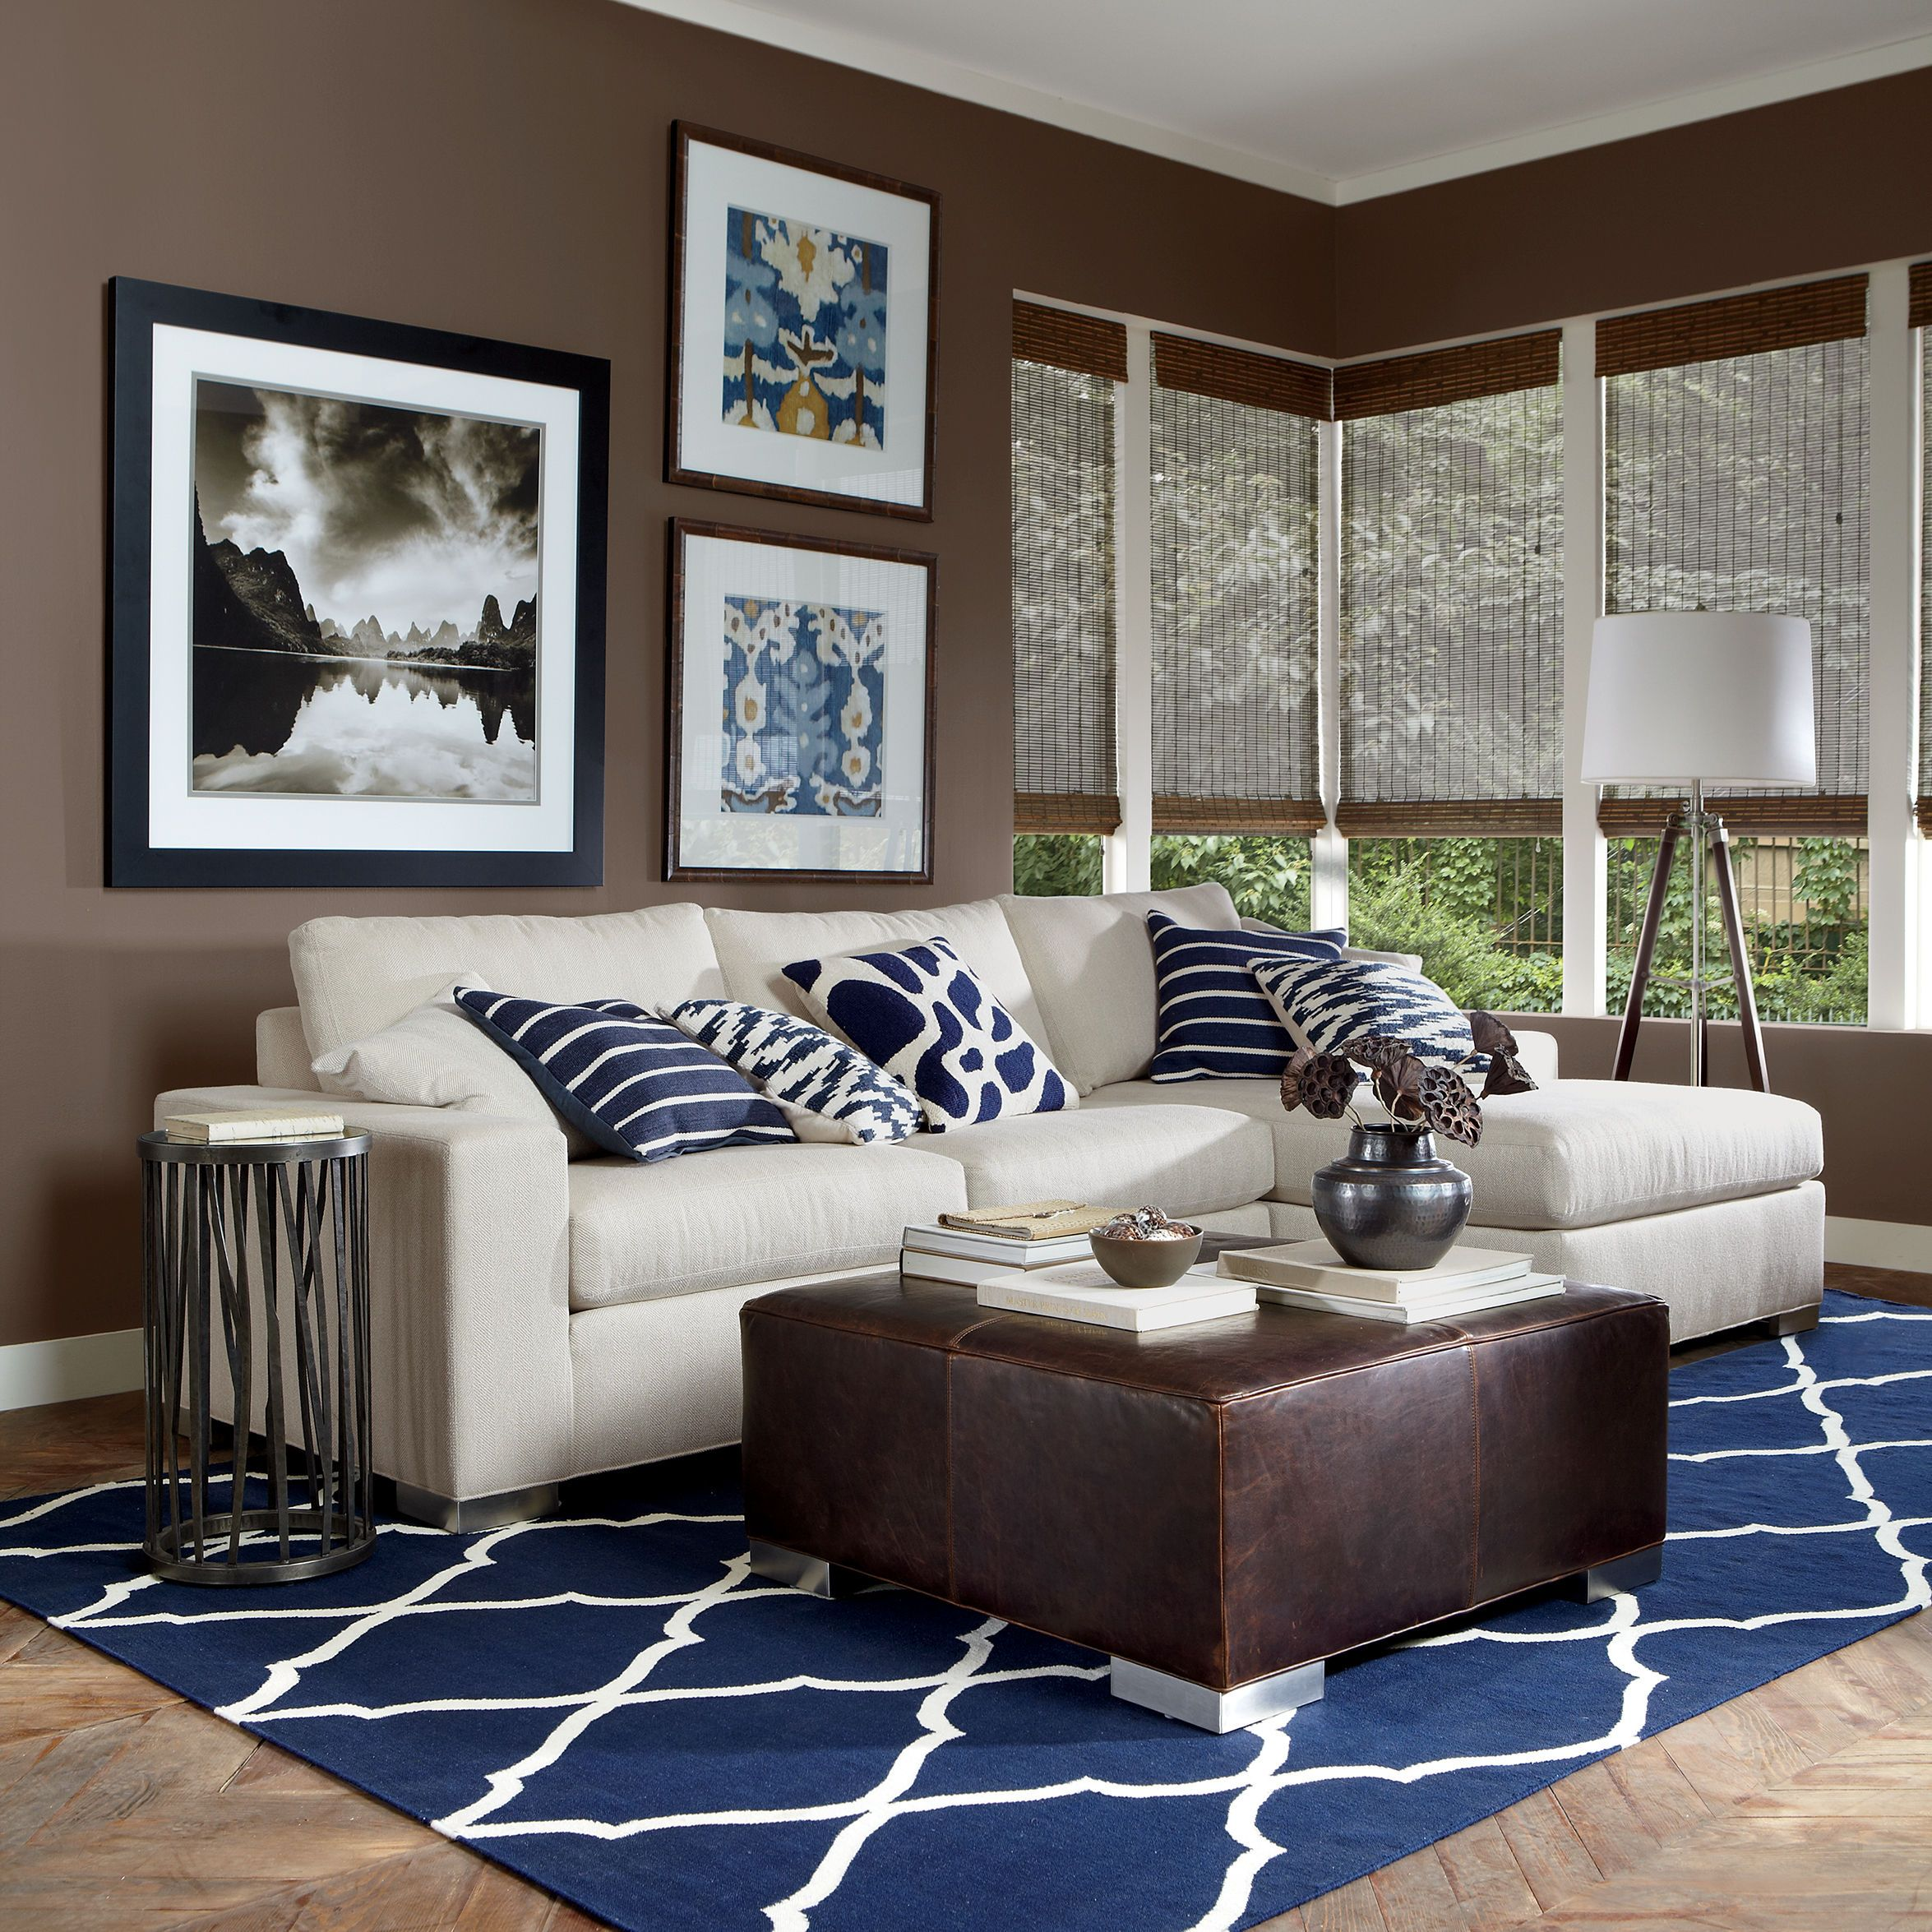 15 Blue And Brown Living Room Decor Ideas You Might Think That Colors Are Not Appealing Combination But If Combine Them Together Youll